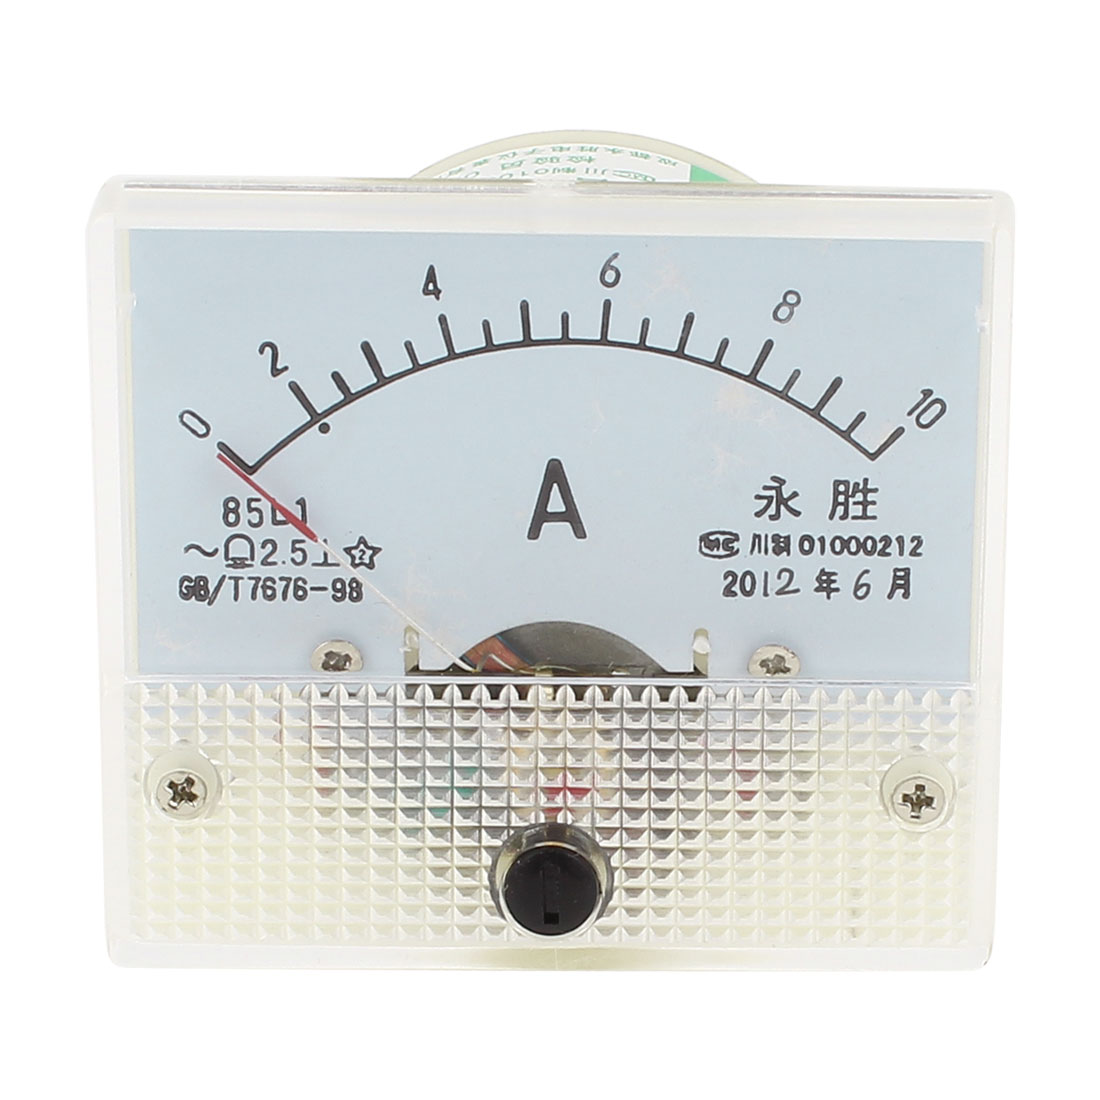 AC 0-10A Current Range Analog Panel Meter Ammeter 85L1